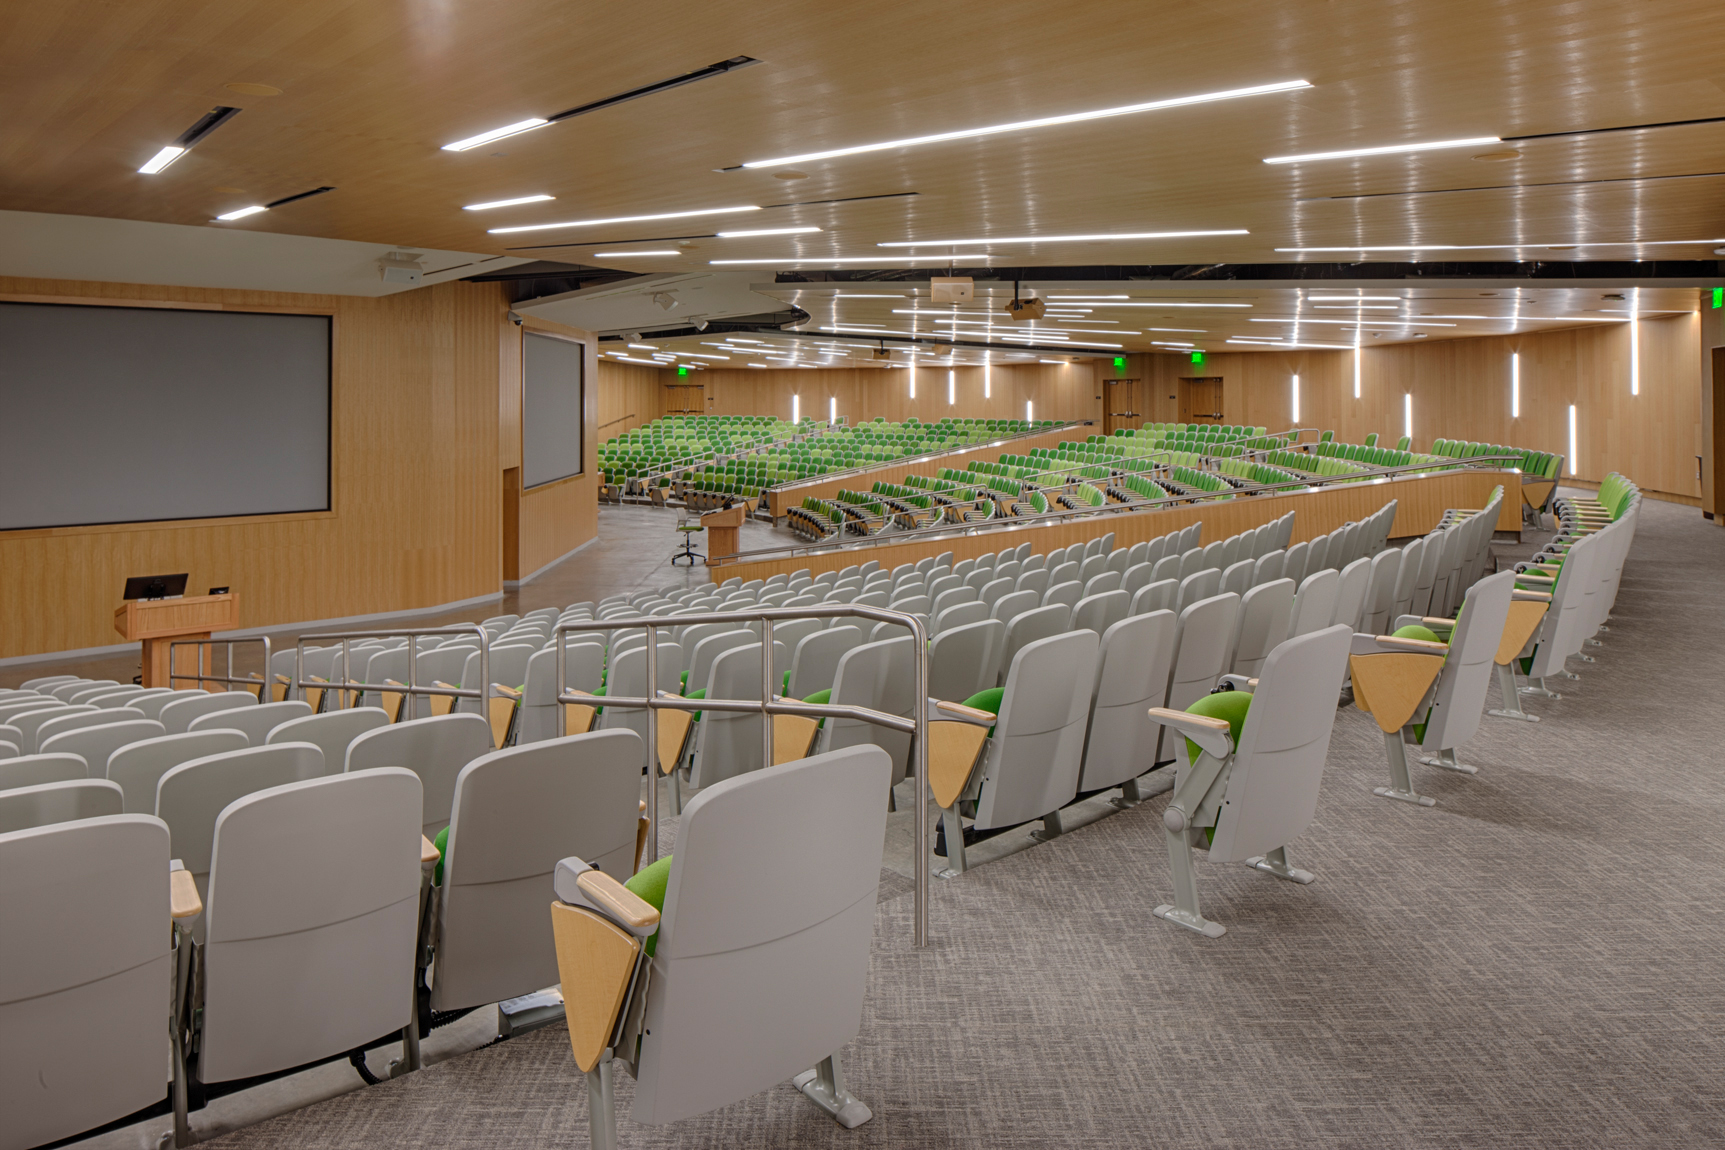 Interior view of college lecture hall with green seating which can be partitioned.Architectural Photography by: Paul Richer / RICHER IMAGES